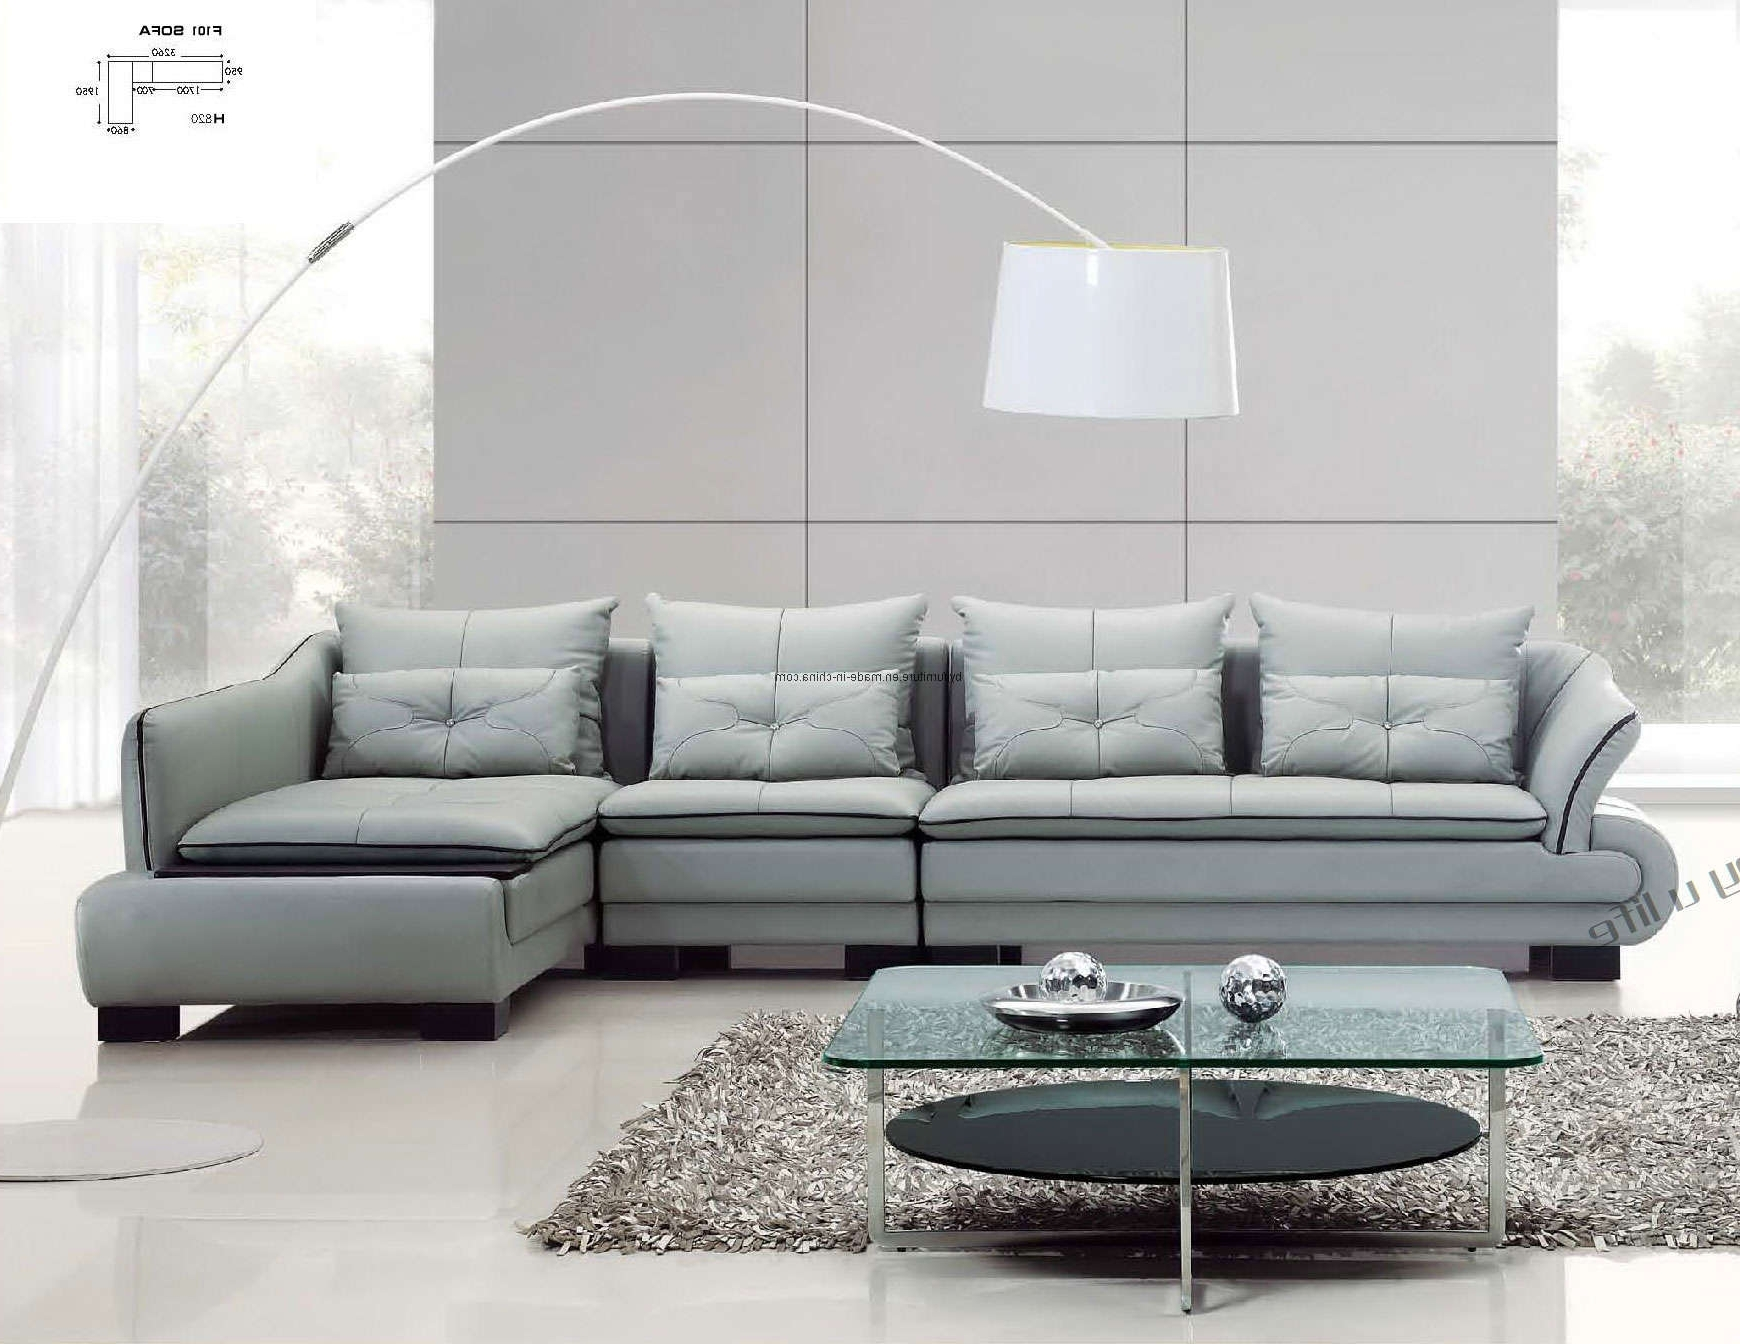 Contemporary Sofa Chairs Inside Newest Sofa: Remarkable Contemporary Sofa Set Best Contemporary Sofas (View 6 of 20)